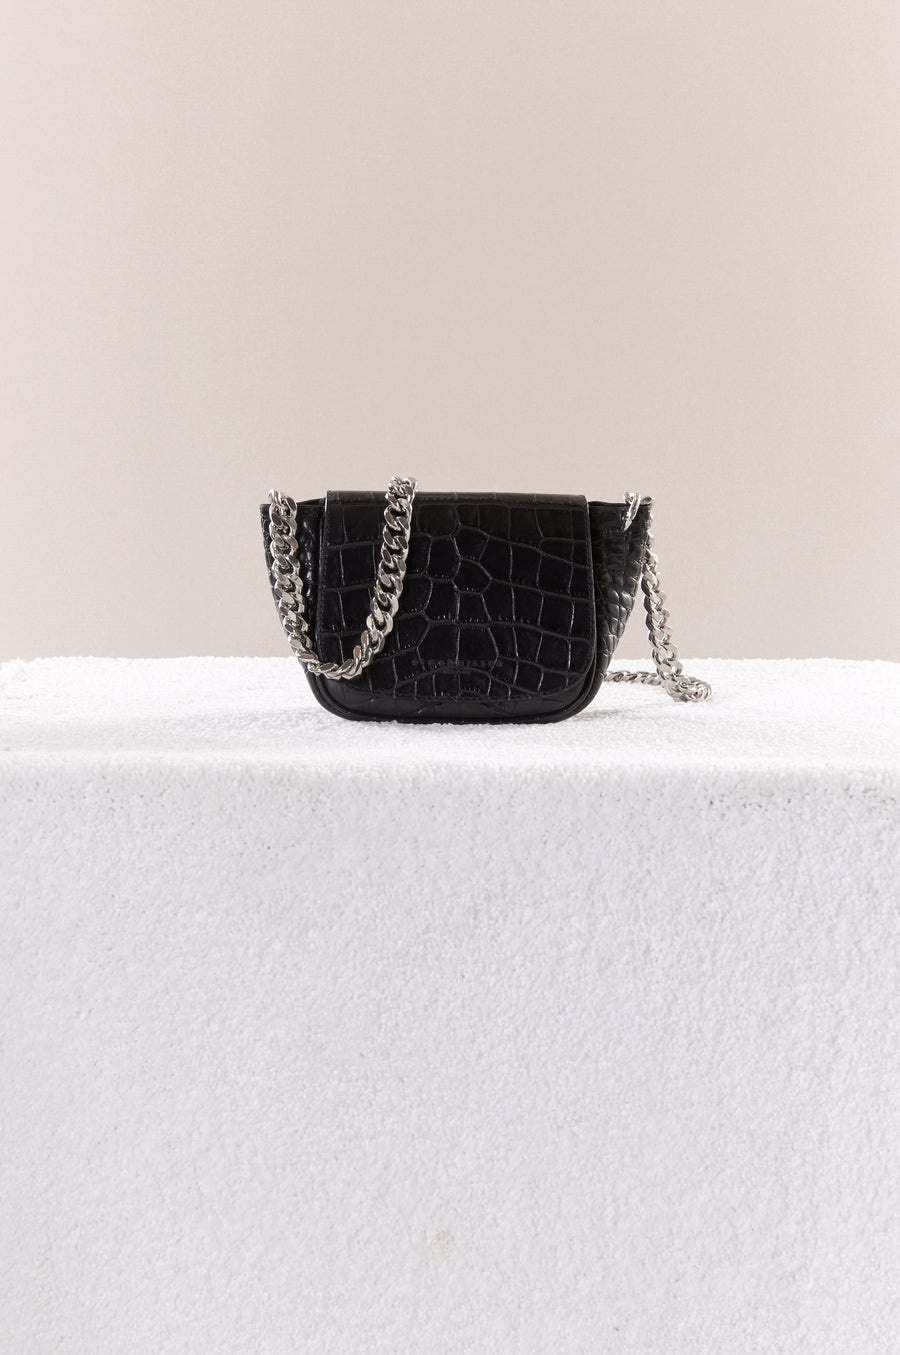 MINI BEND BAG IN BLACK CROC